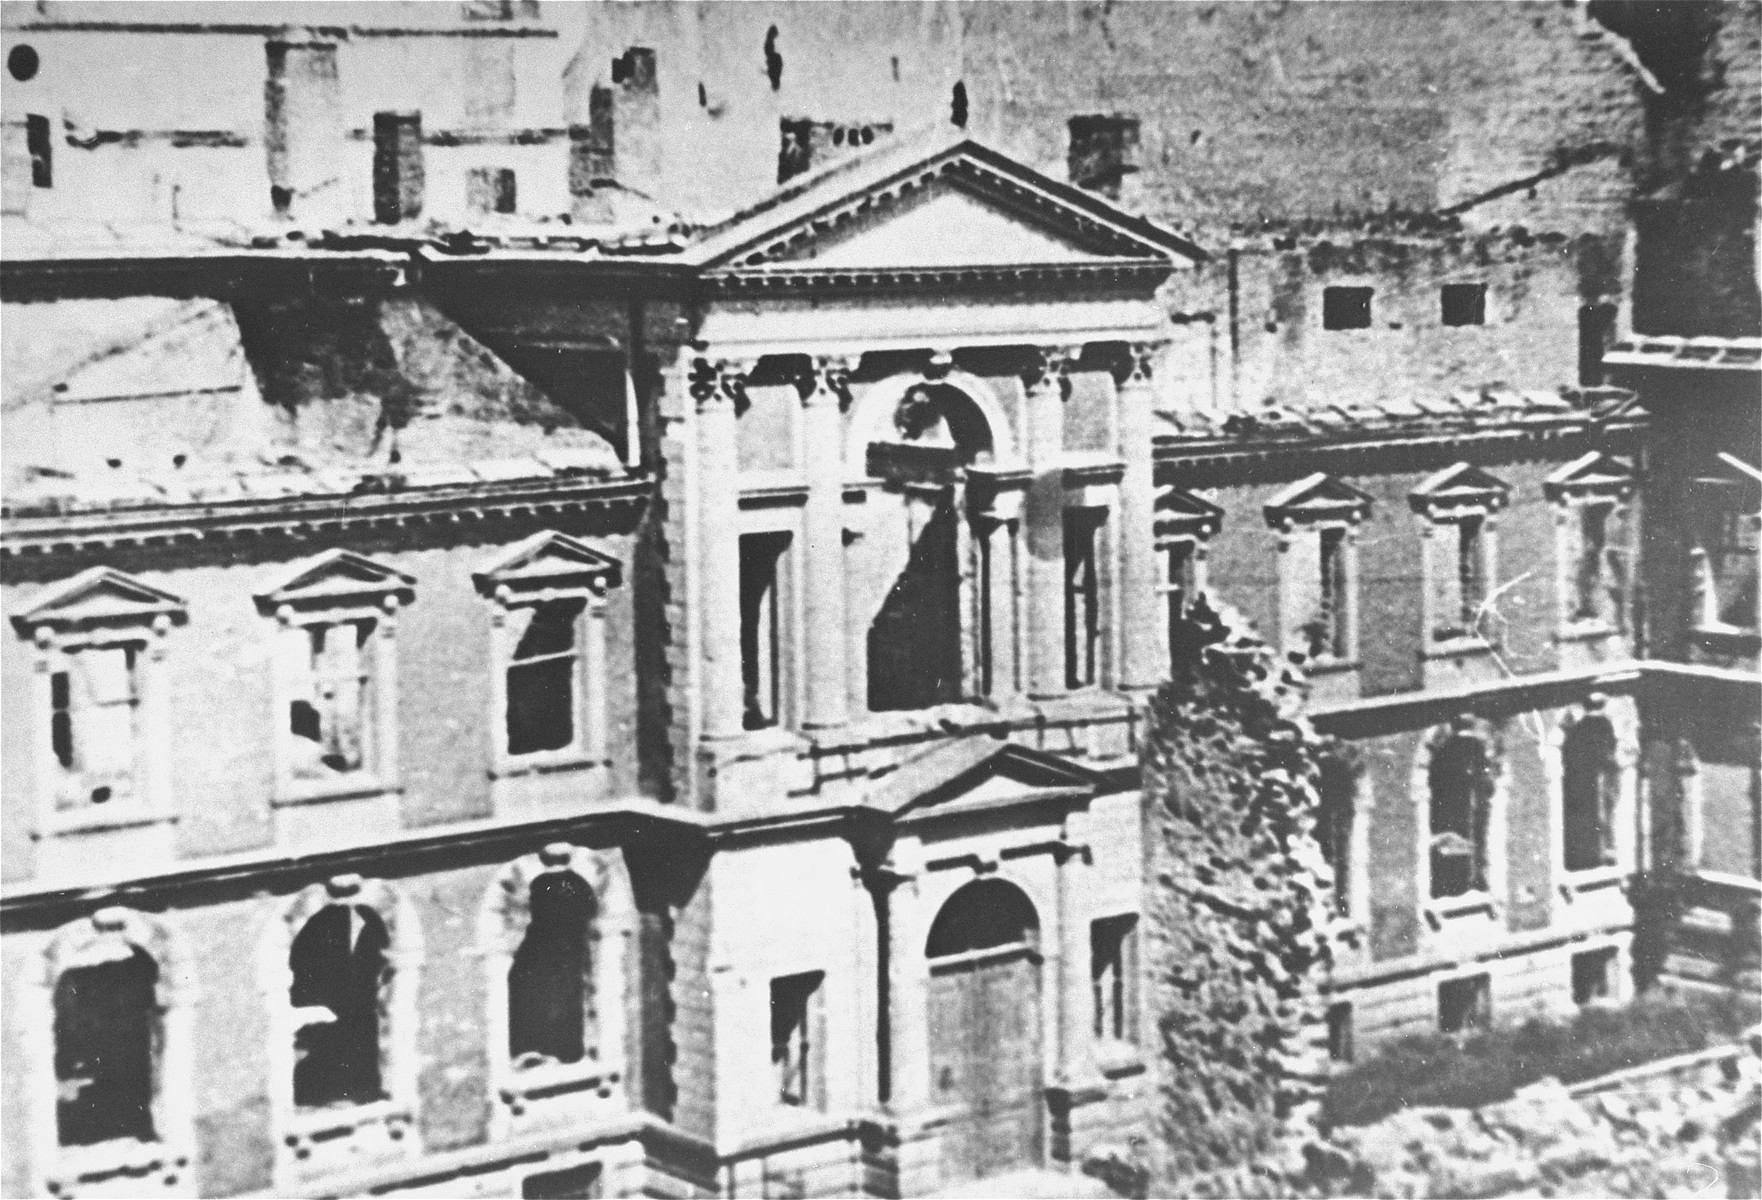 The ruins of a building destroyed by the SS during the suppression of the Warsaw ghetto uprising.